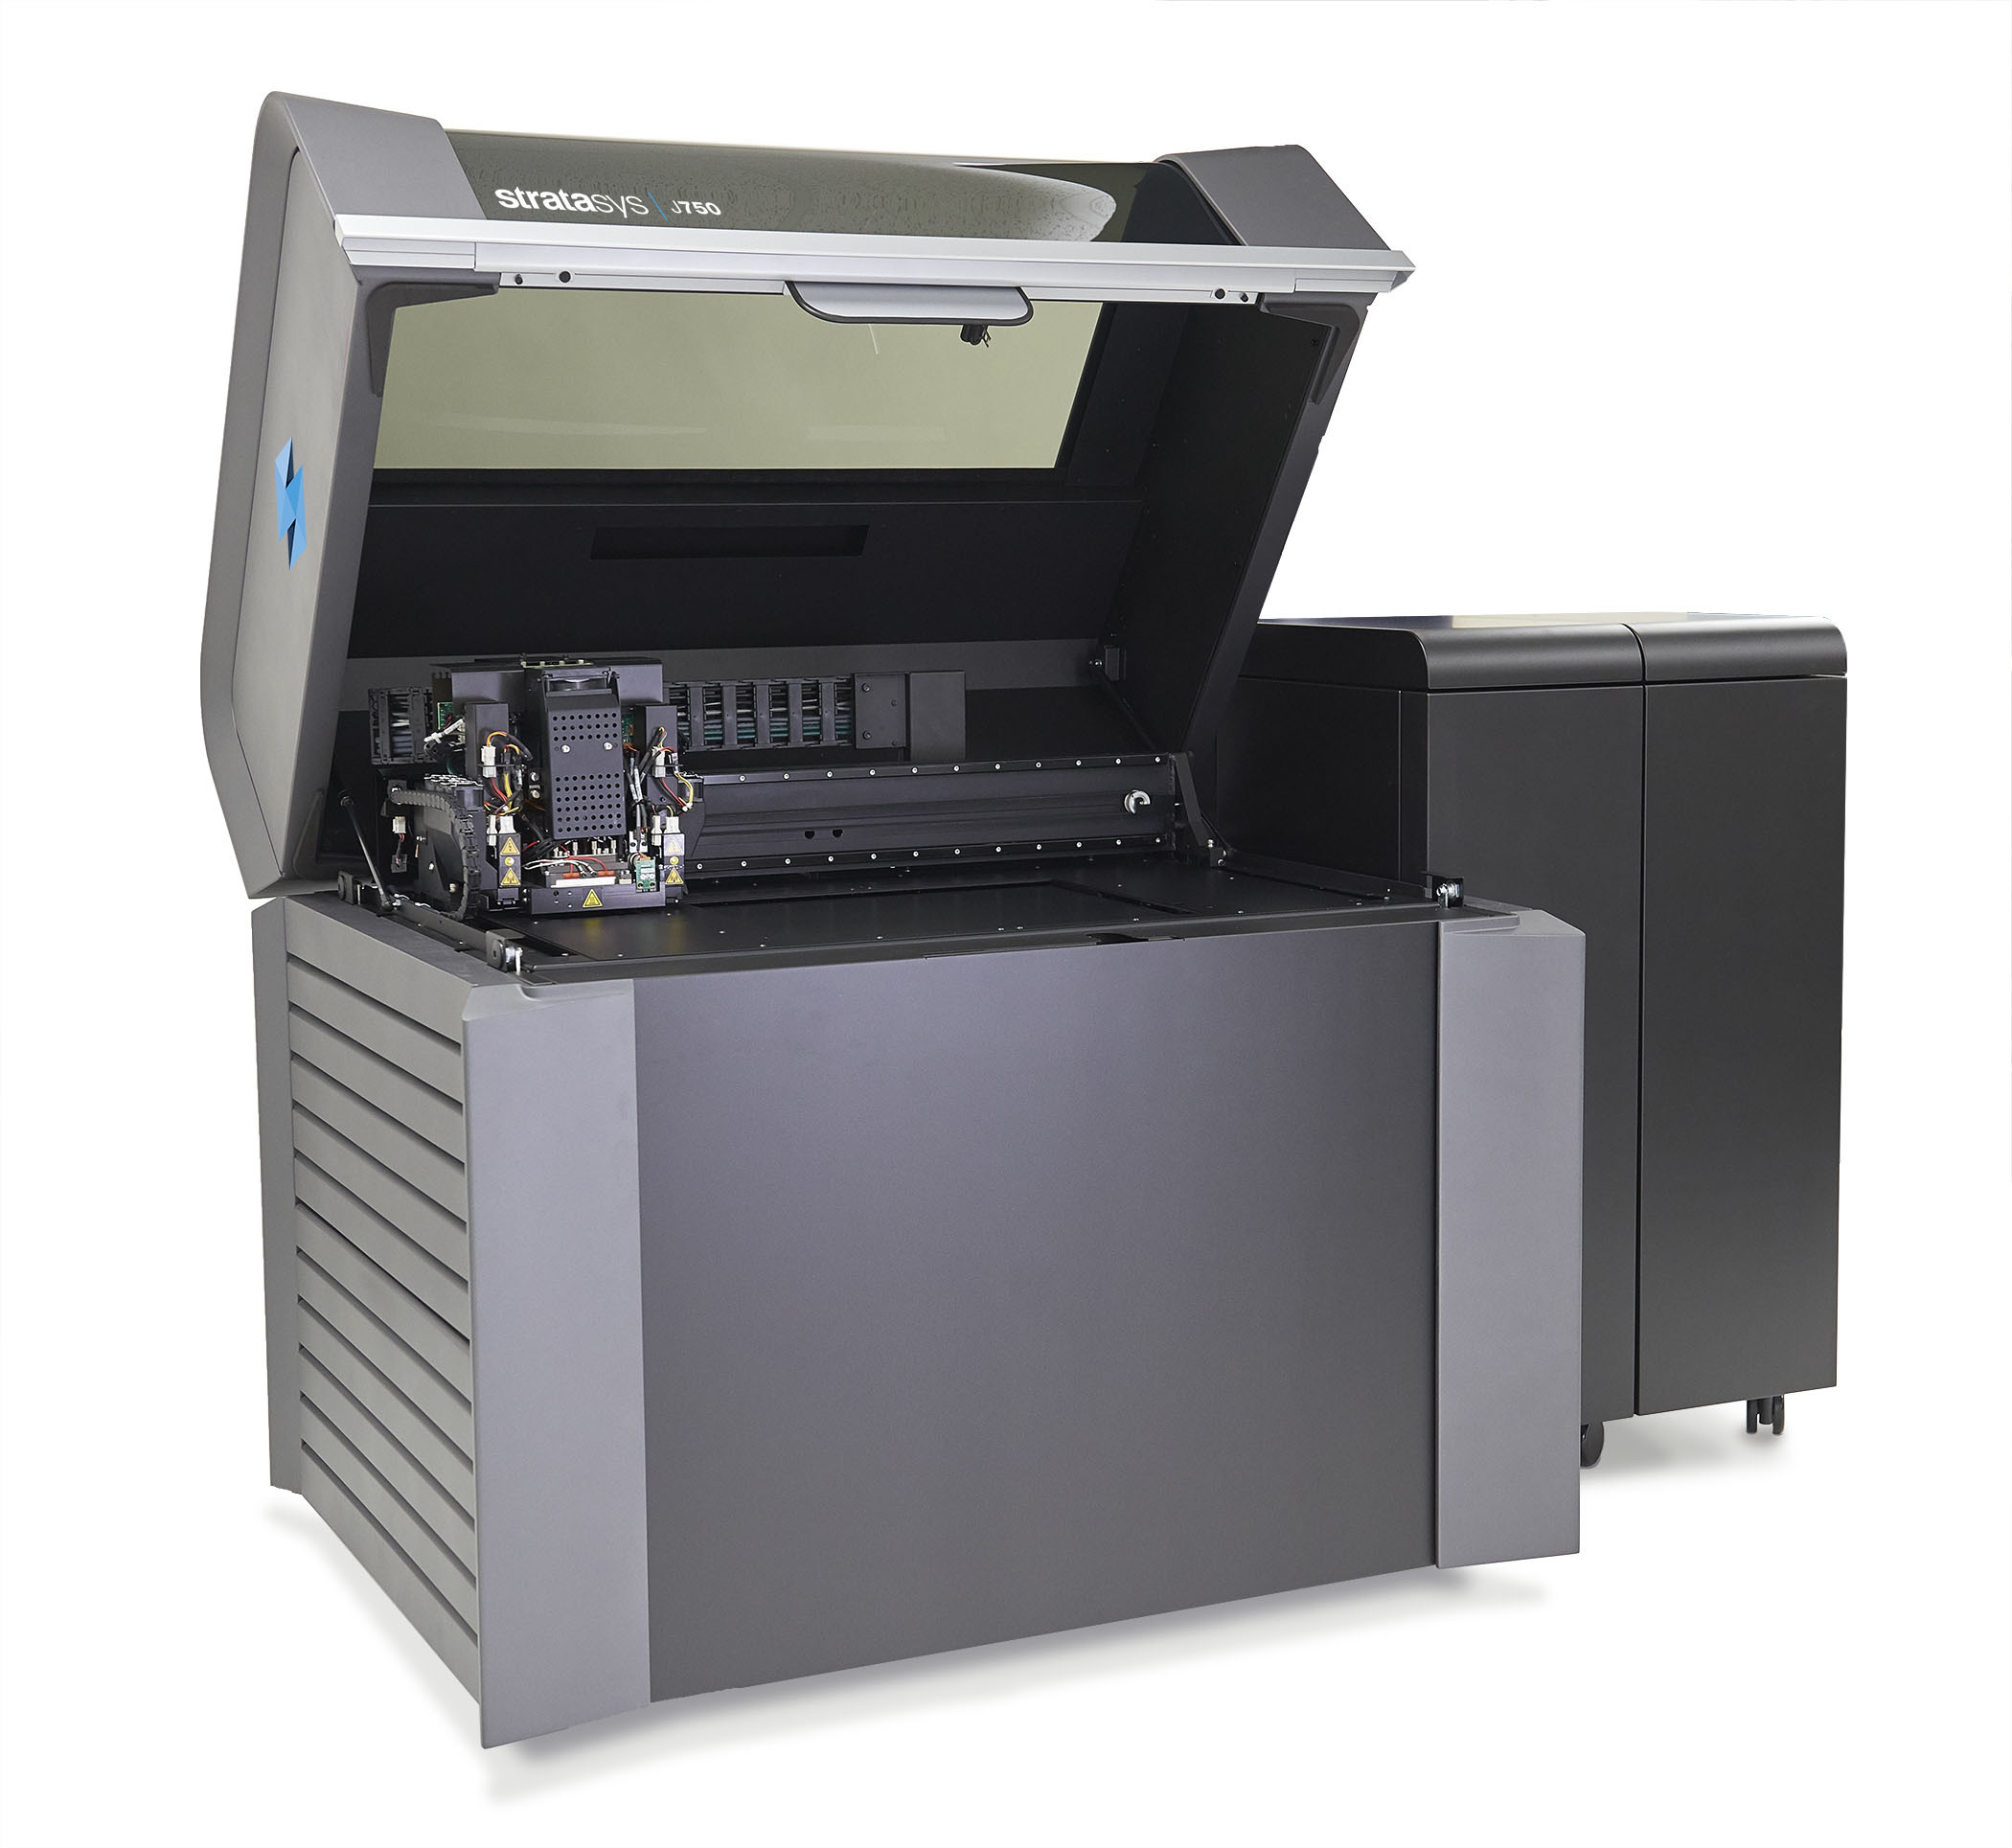 J750 3D printer is validated with the Materialise FDA-cleared software, with a selection of 8 different materials